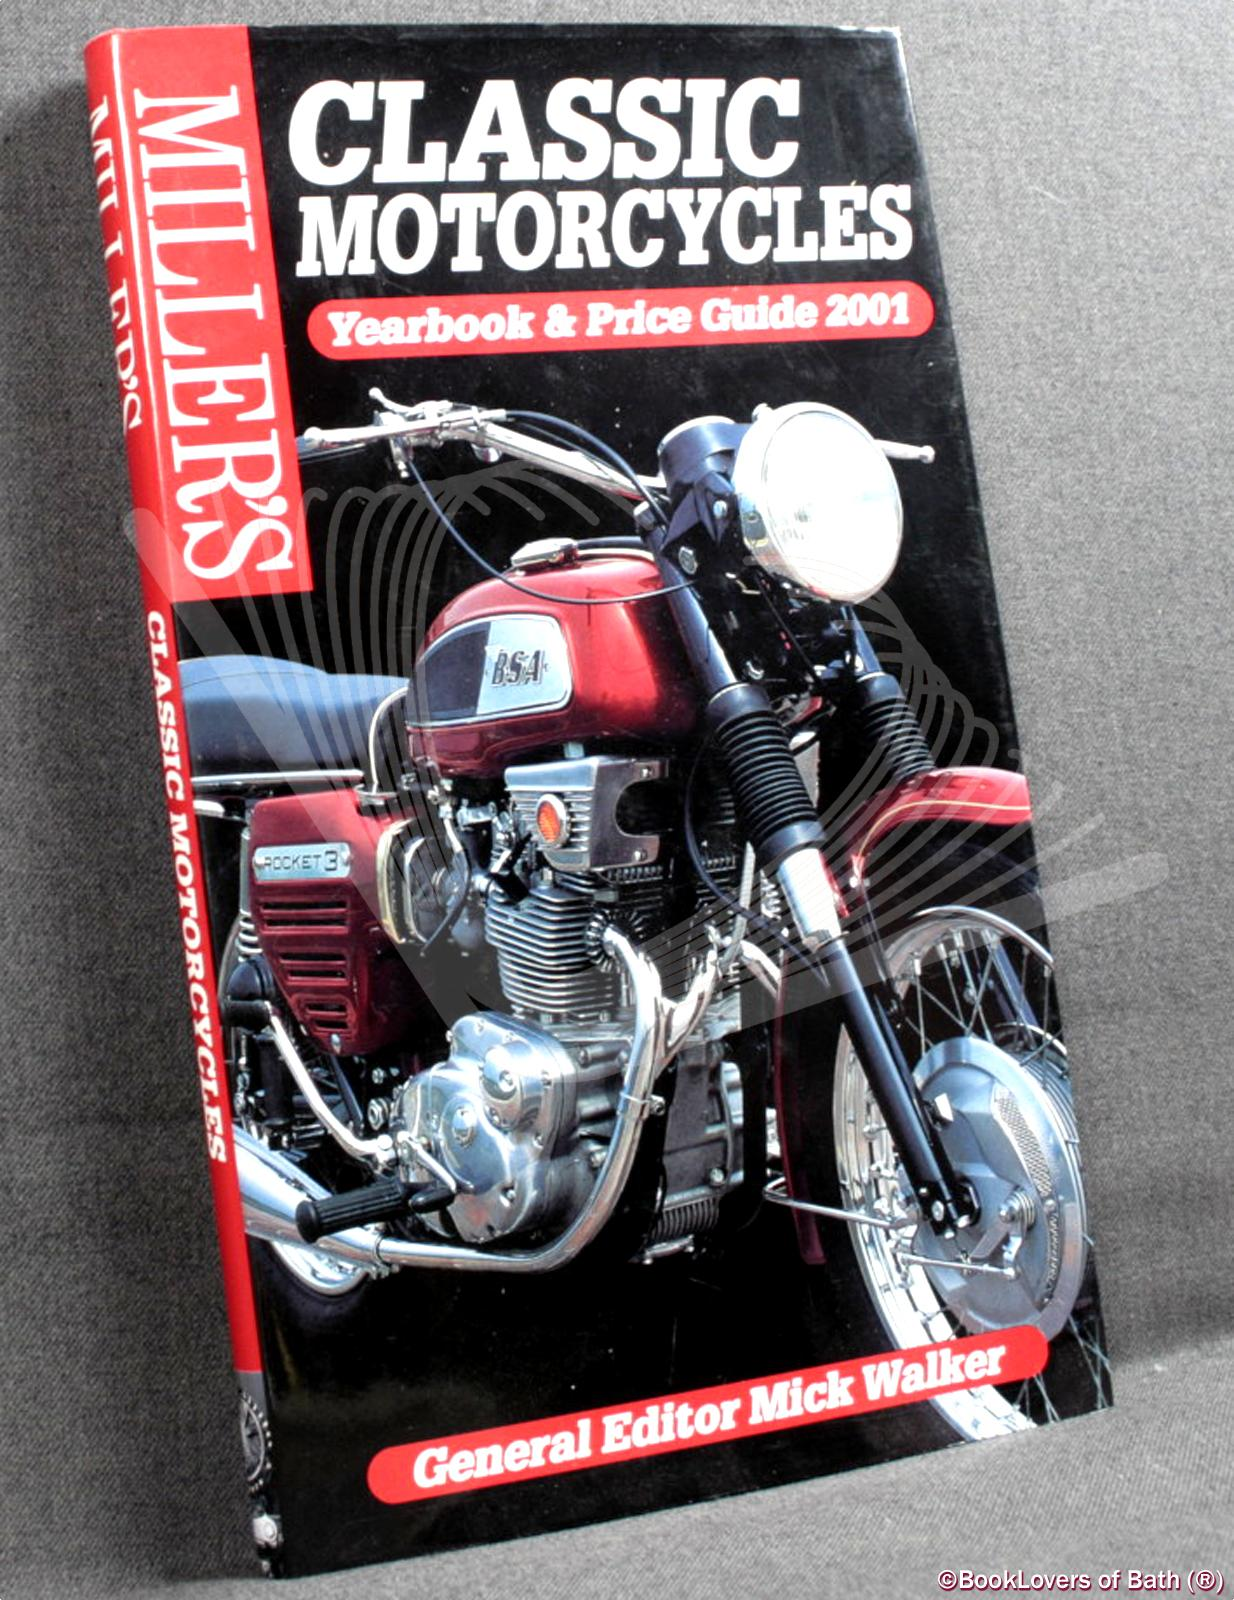 Classic Motorcycles Yearbook and Price Guide 2001 - Edited by Mick Walker